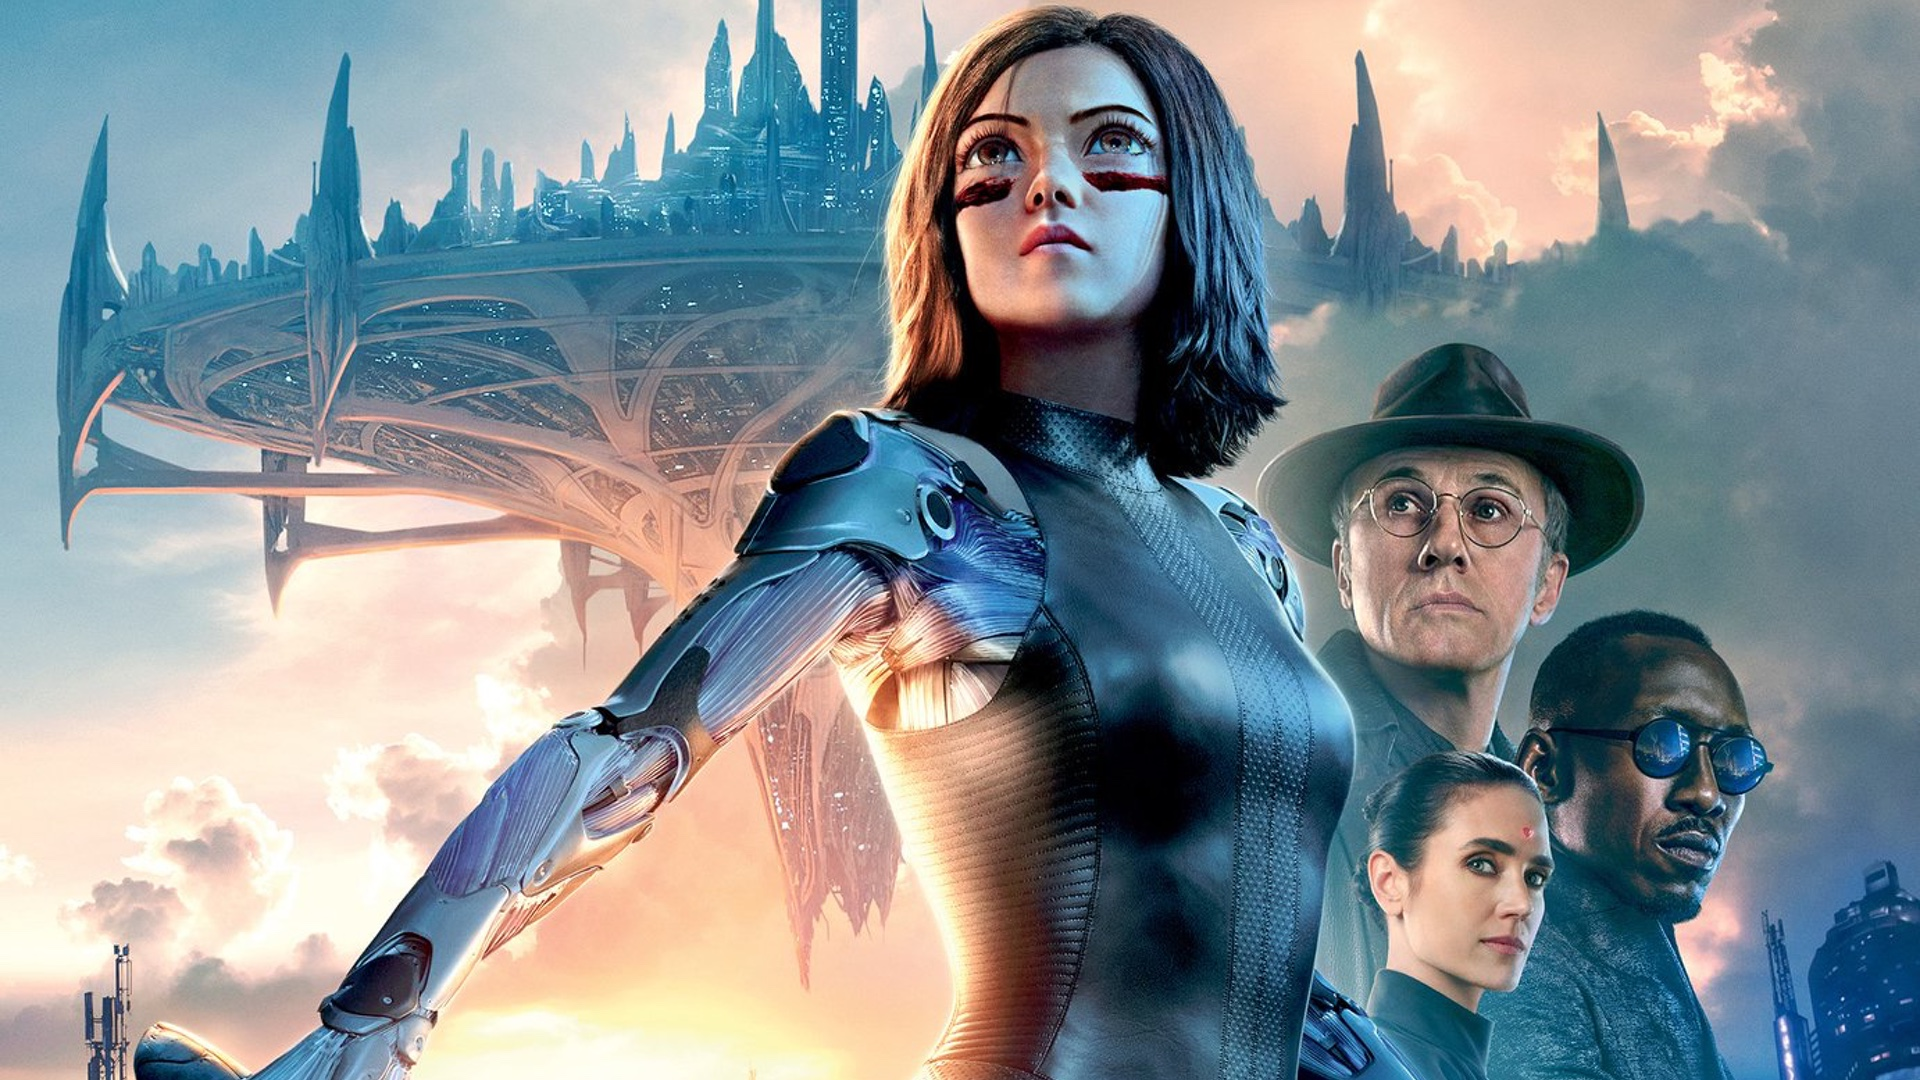 Win an Alita: Battle Angel pack!